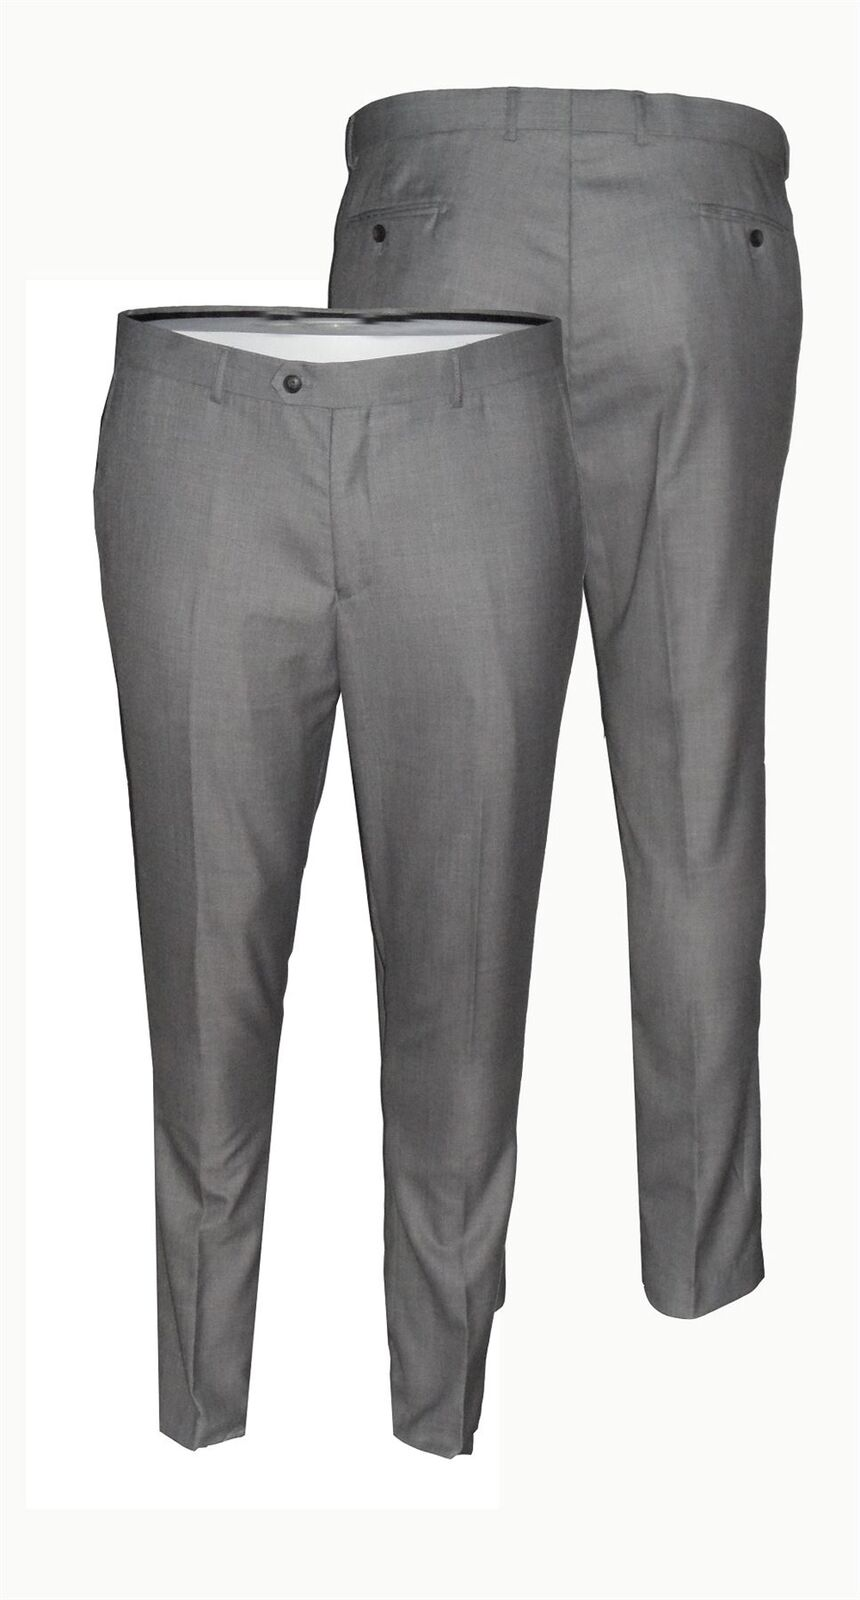 Mens Formal Classic Fit Suit Trousers in Grey (Reegan) in Waist 44 to 60, S R